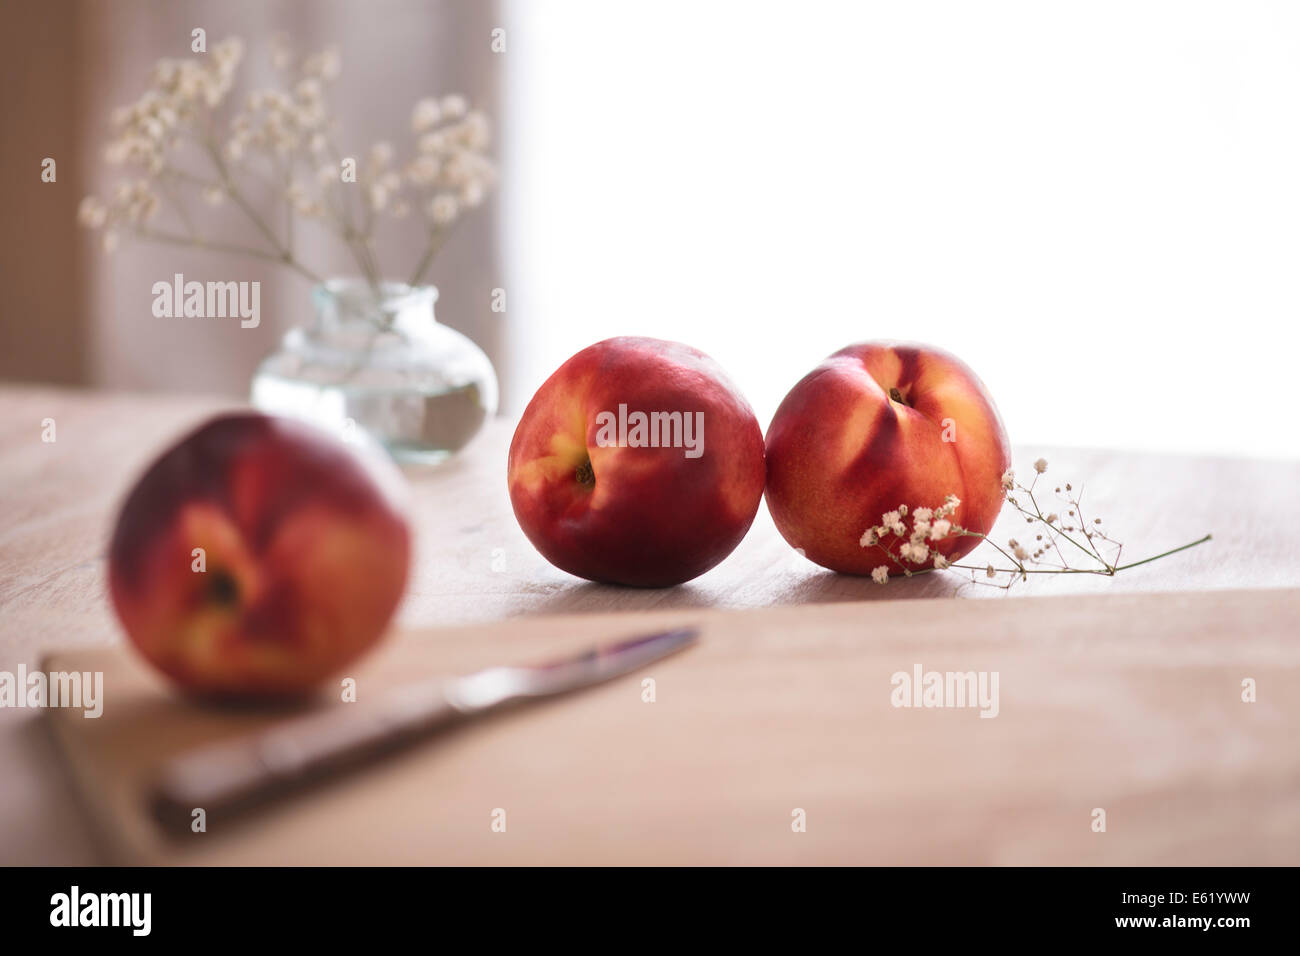 White nectarines on a cutting board with white flowers. Light, bright, summery background. - Stock Image